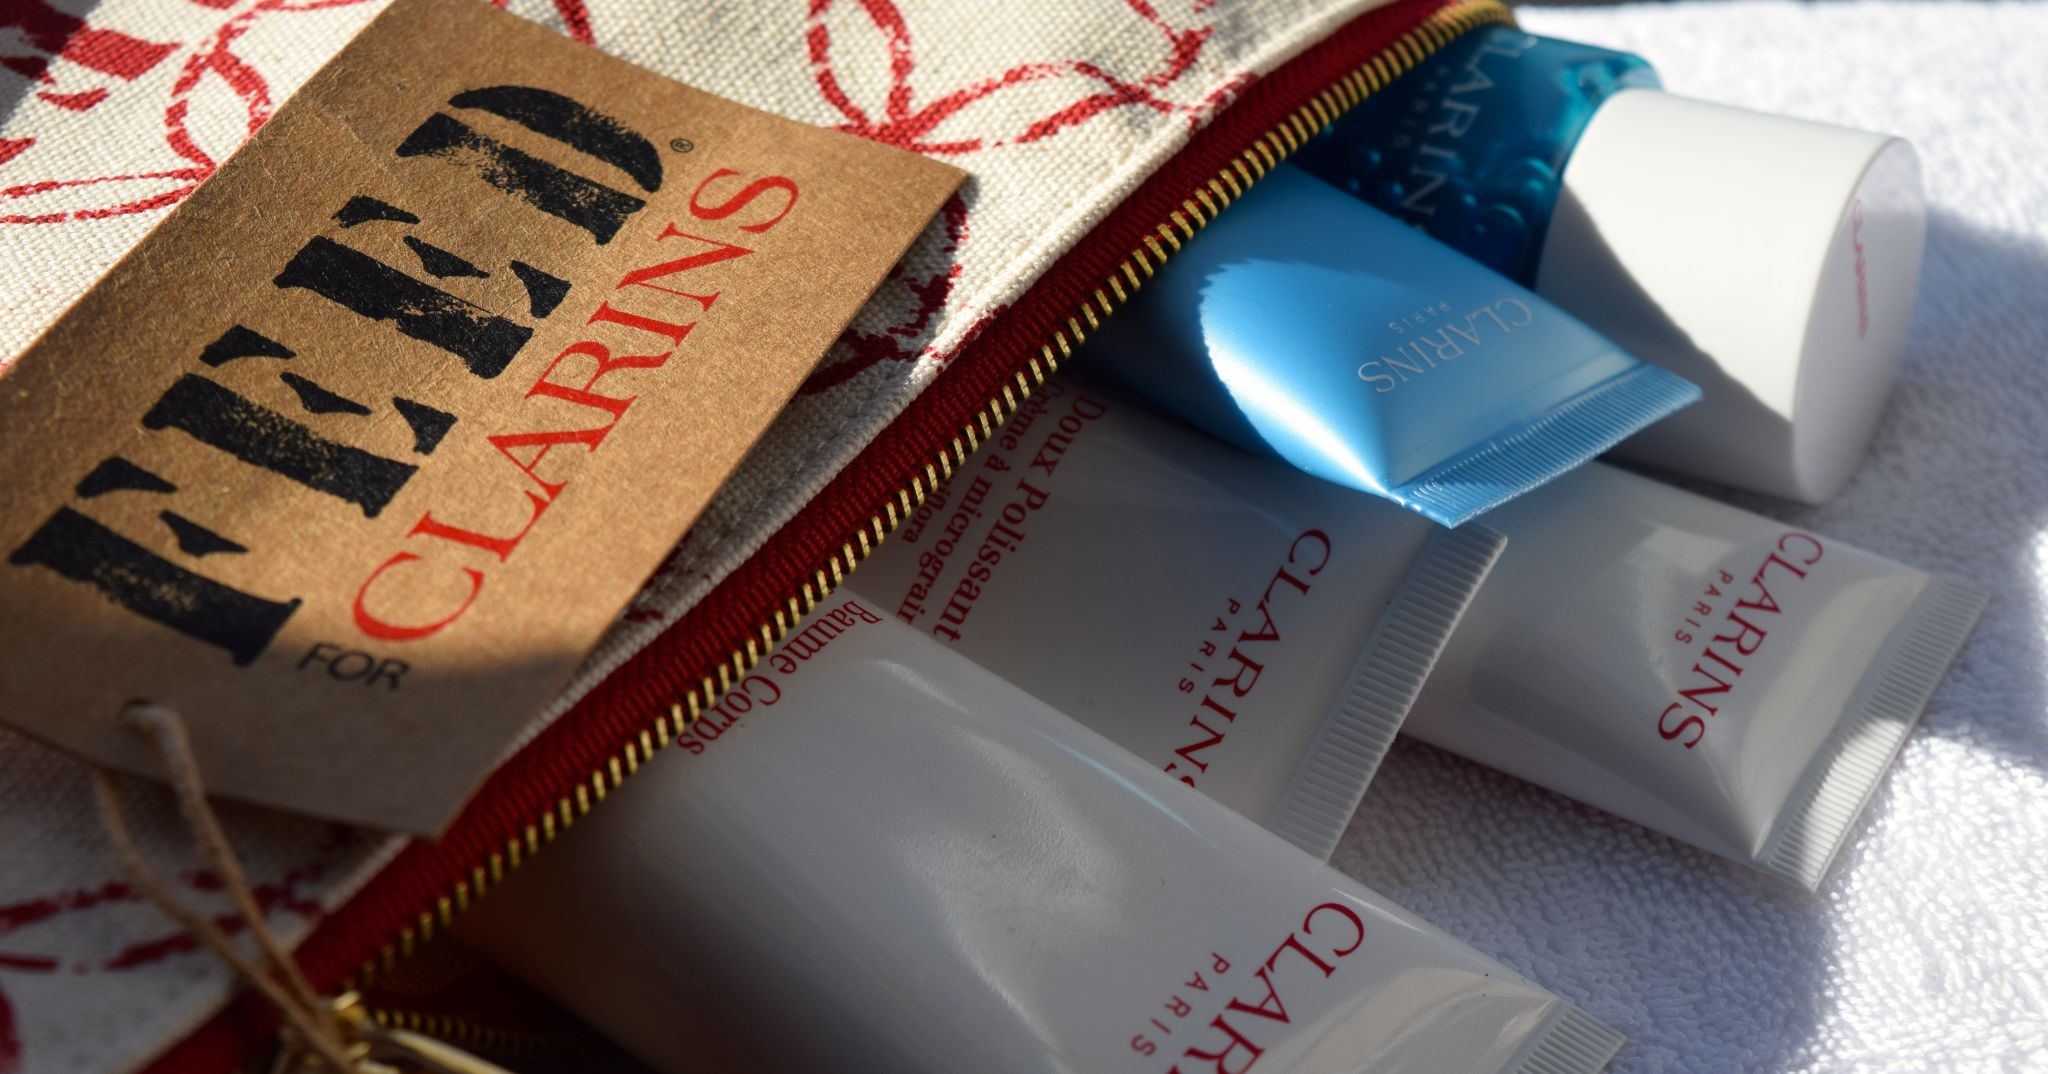 clarins feed 10 gift with purpose the luxe list clarins feed 10 gift with purpose 2015 2